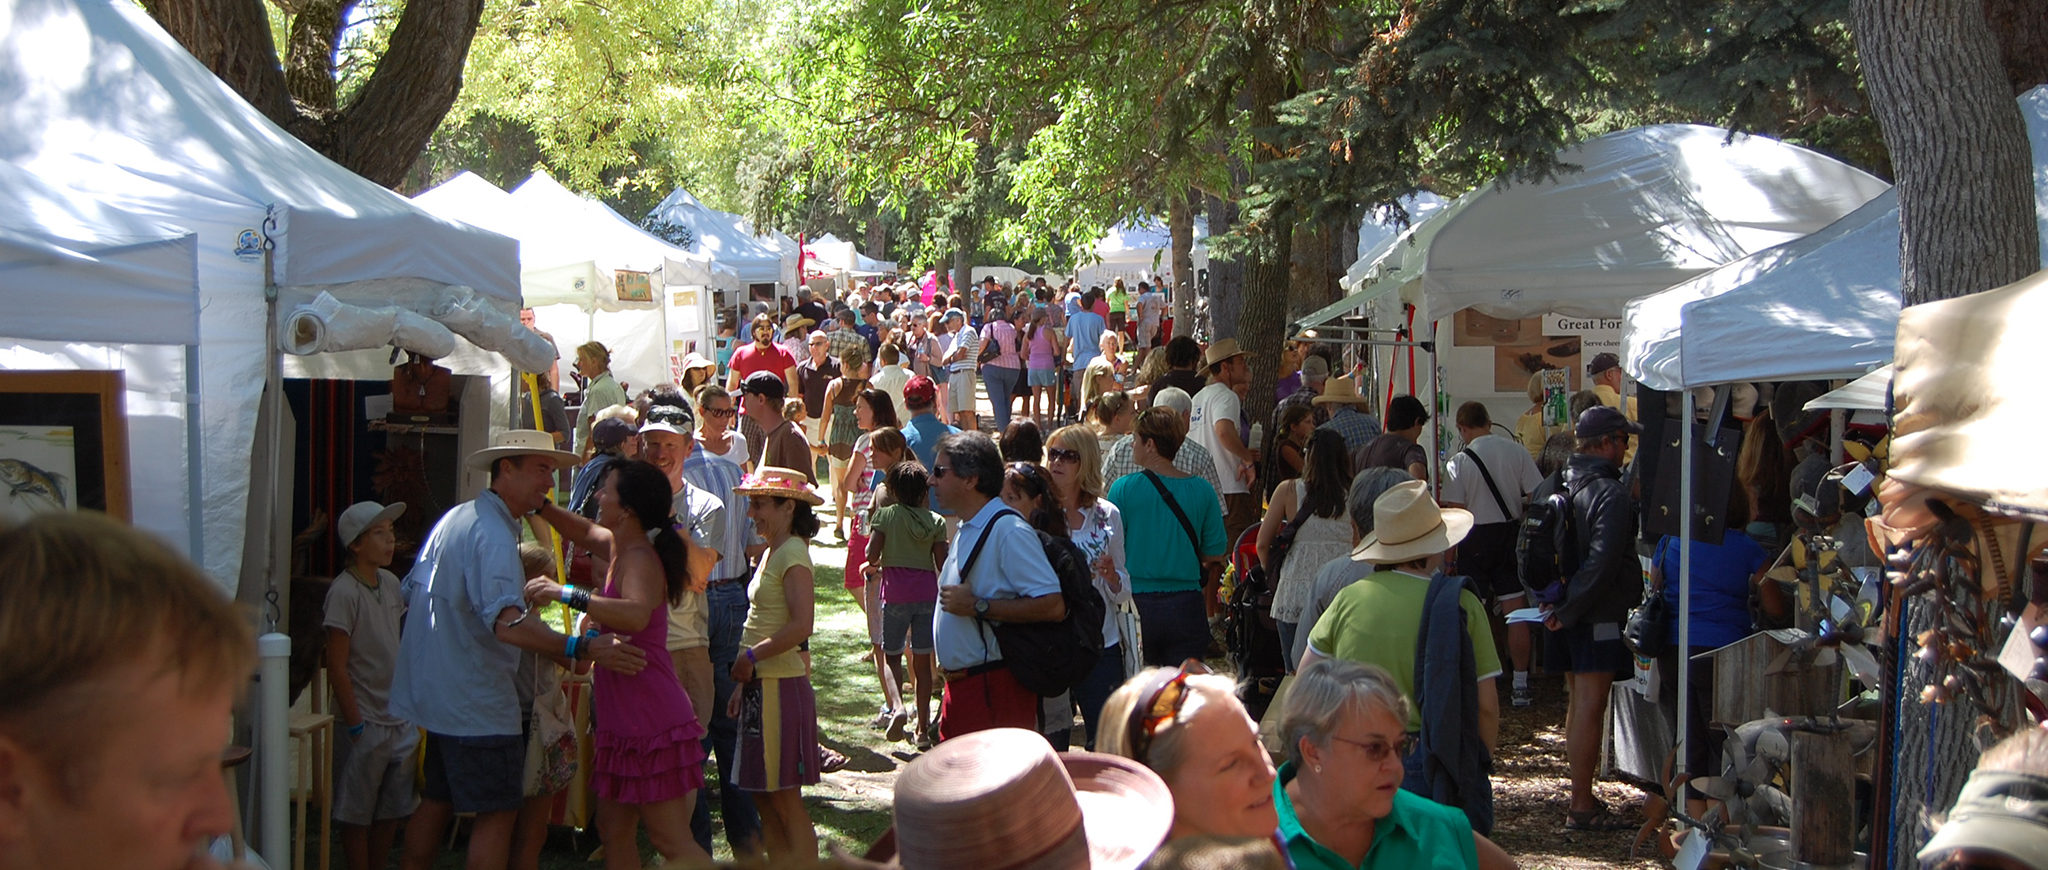 Arts Crafts Festival In The Pines